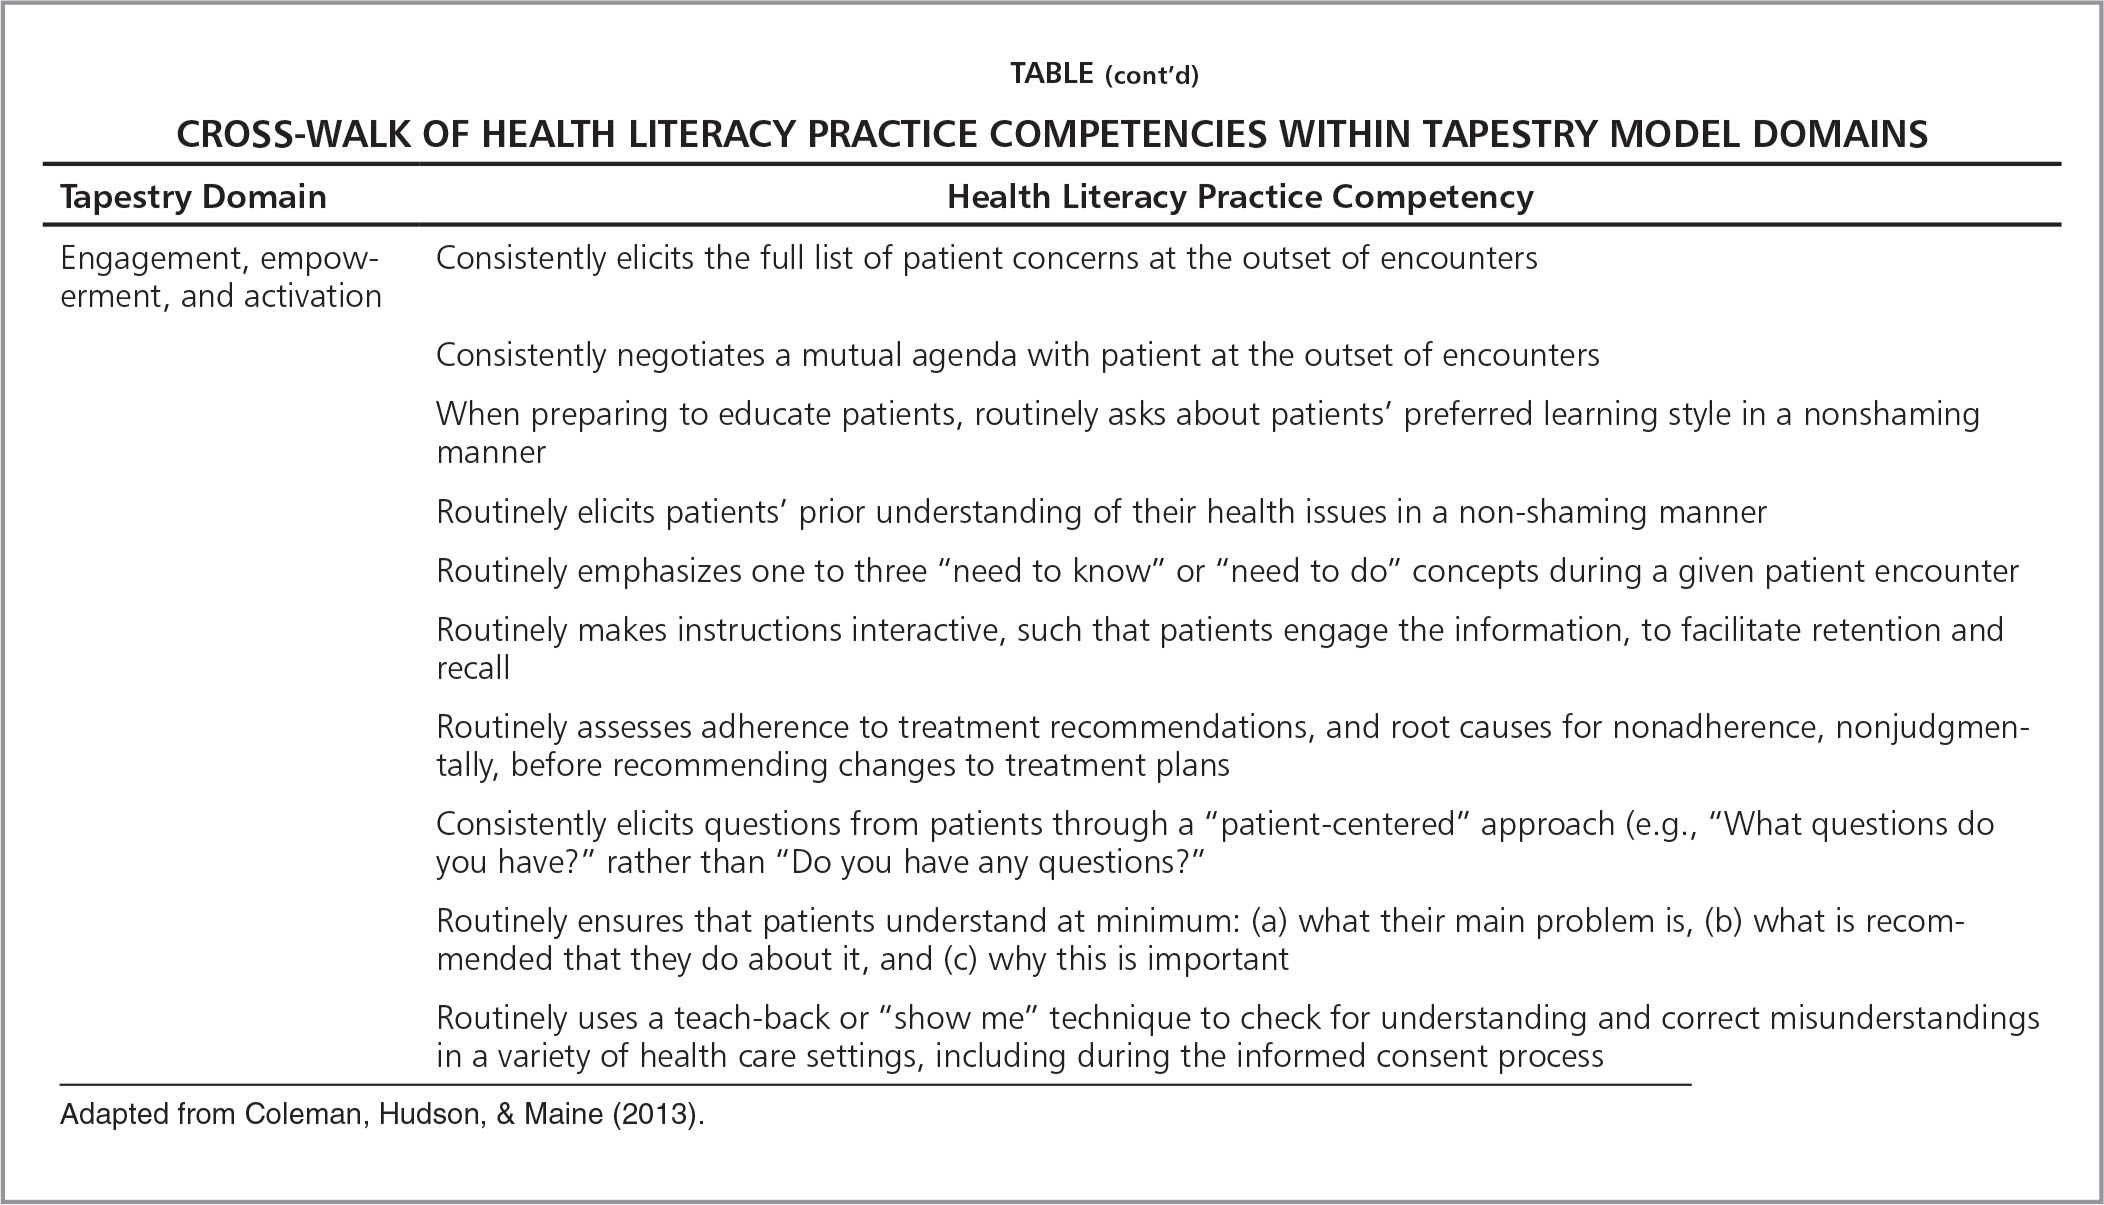 Cross-Walk of Health Literacy Practice Competencies Within Tapestry Model Domains